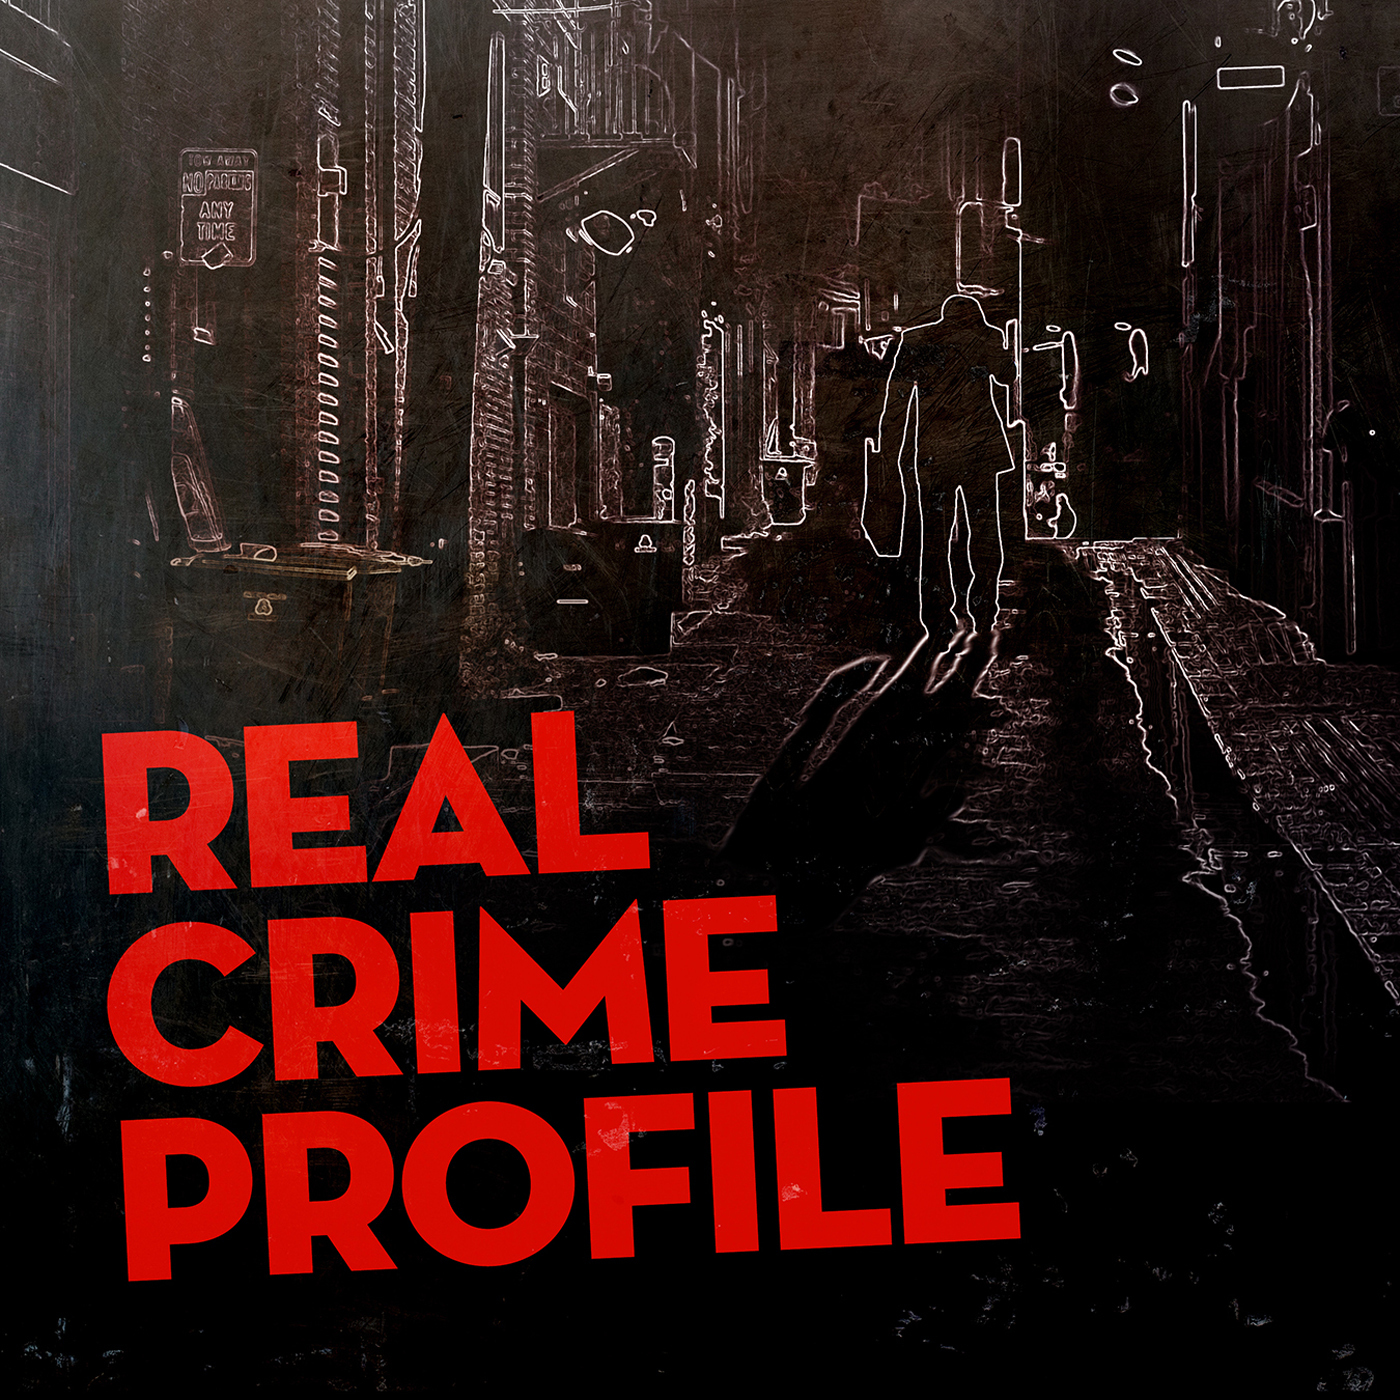 Episode 226 - Profiling Detective Trapp Part 2